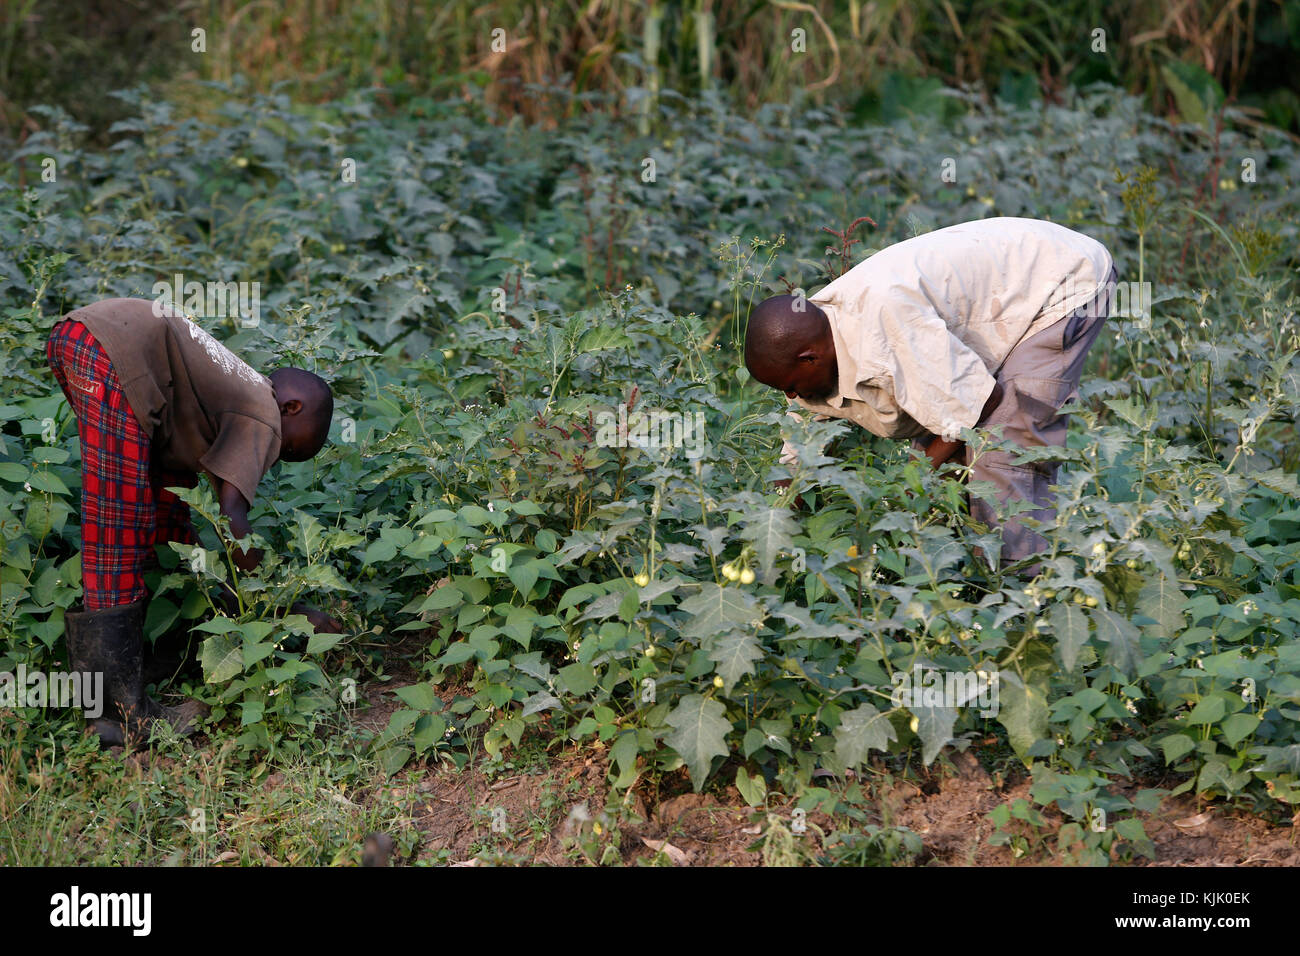 Farmer Apollo Byarunga received 2 loans from ENCOT microfinance. He is working with his son. Uganda - Stock Image